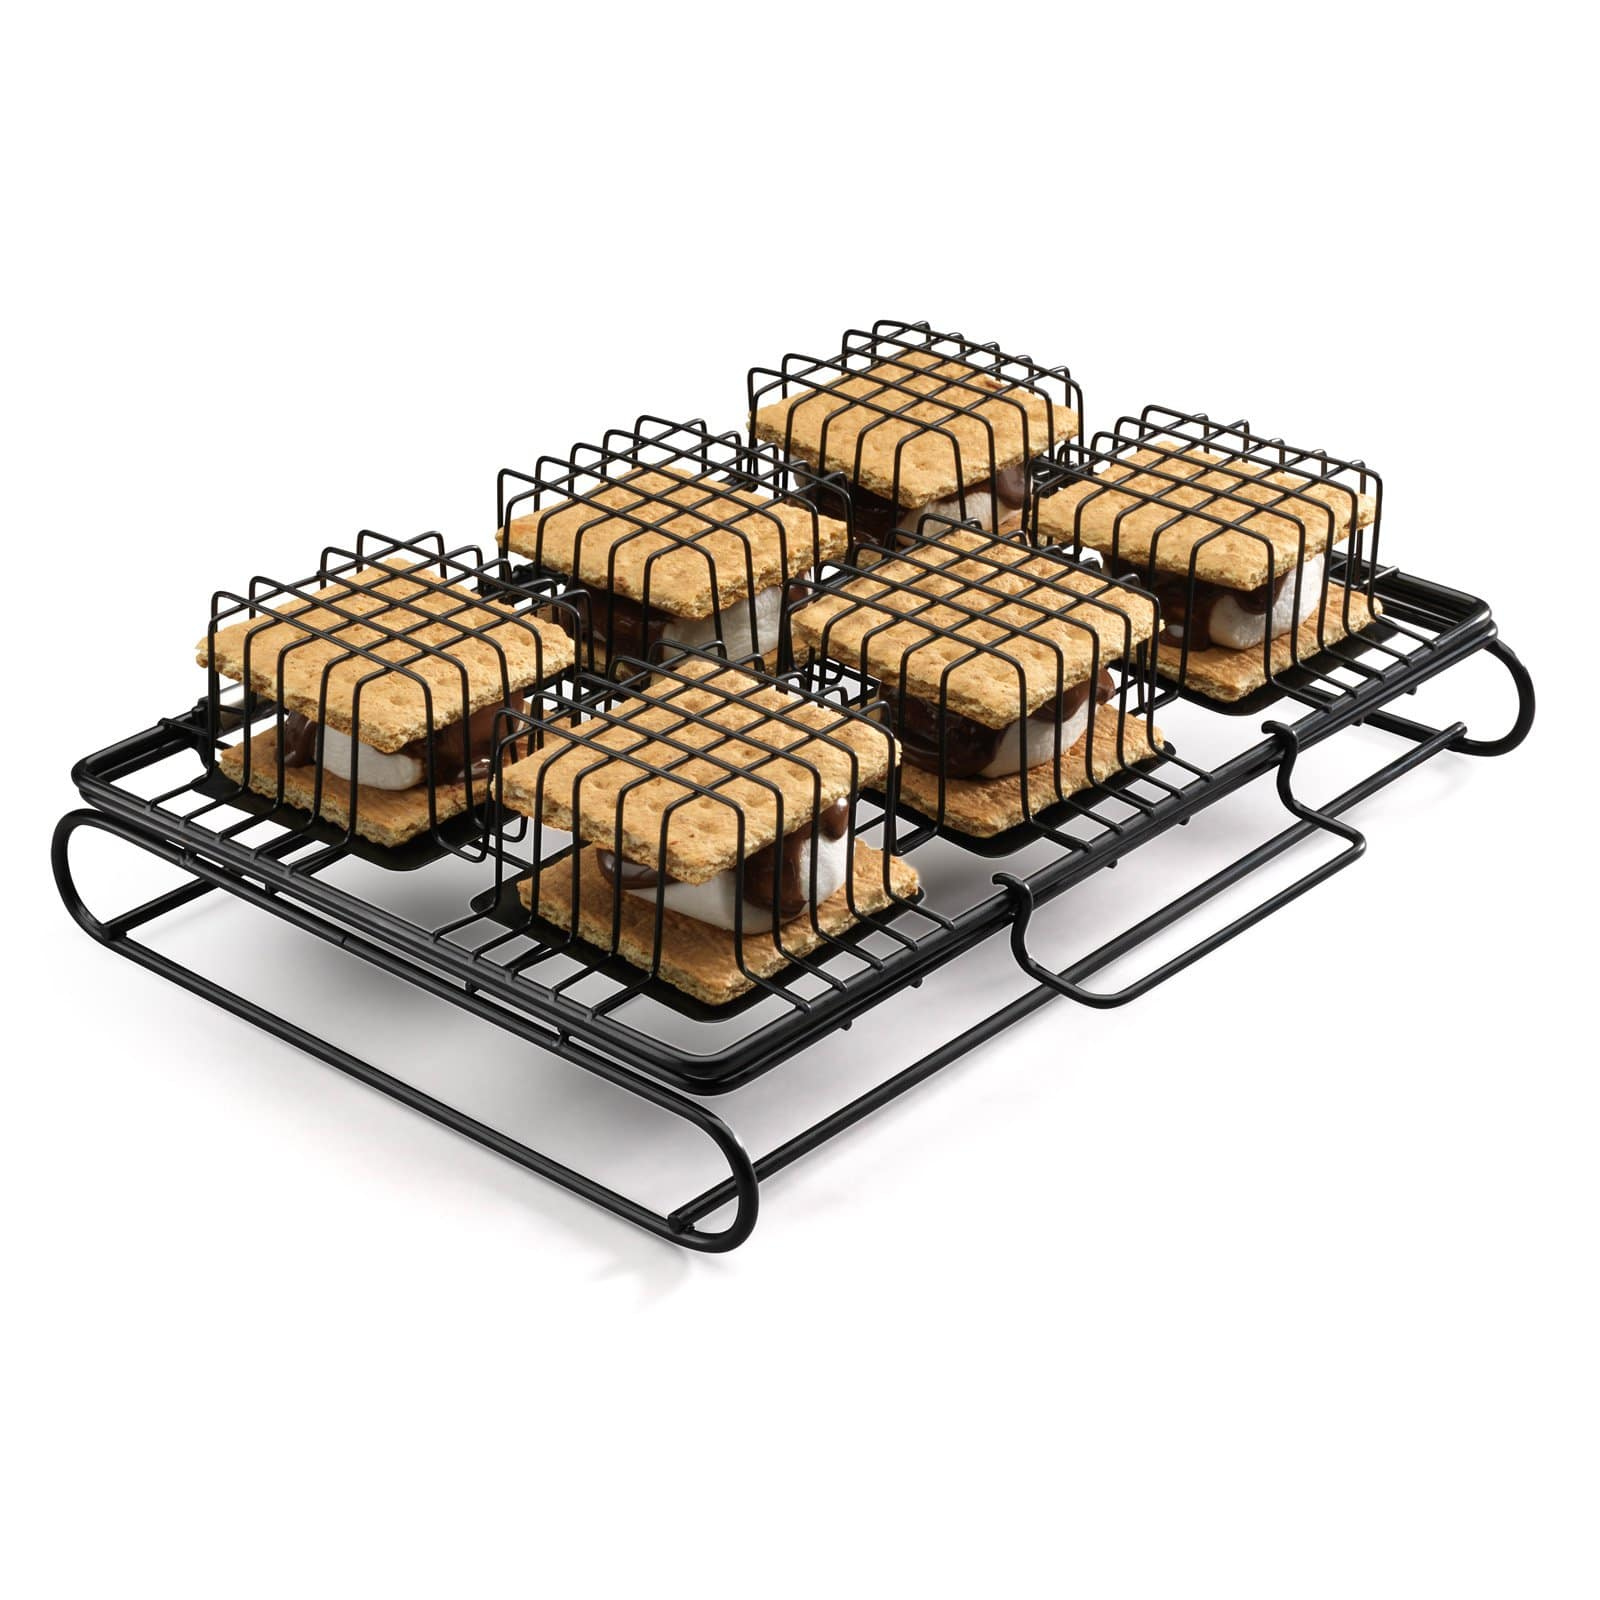 Cuisinart Love 6 S'more Maker $12.23 @ amazon or Home Depot